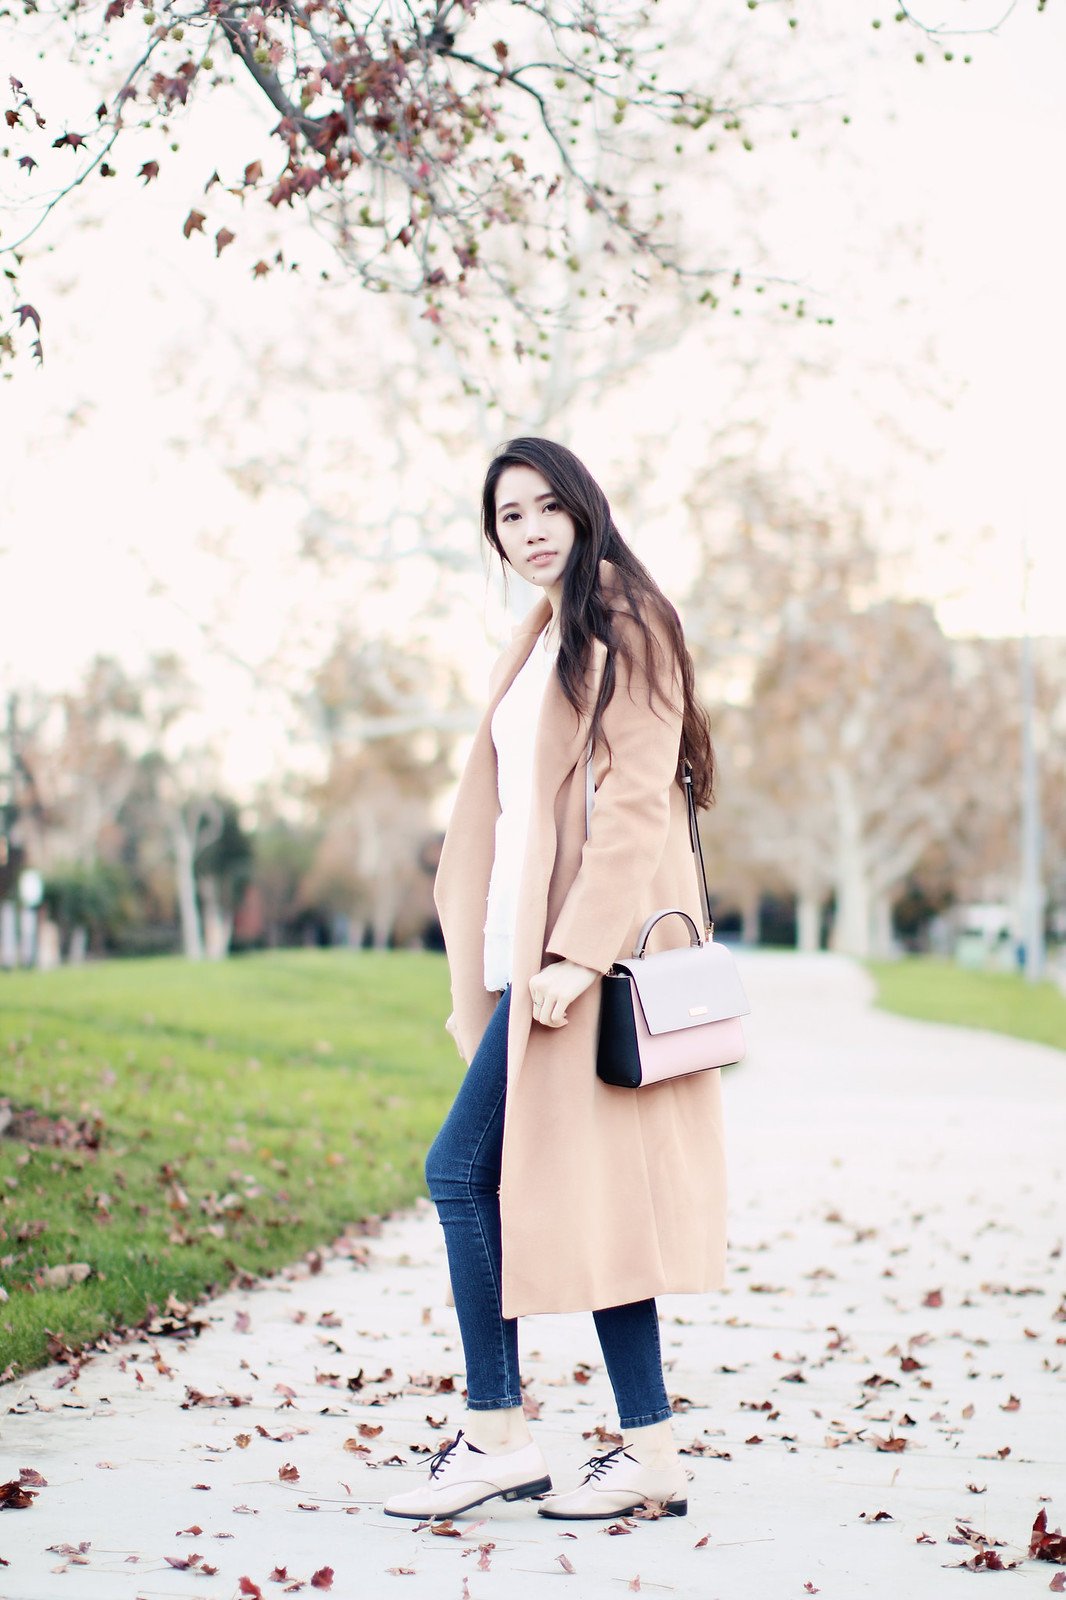 1415-ootd-fashion-fall-autumn-camel-coat-clothestoyouuu-elizabeeetht-chic-classic-timeless-koreanfashion